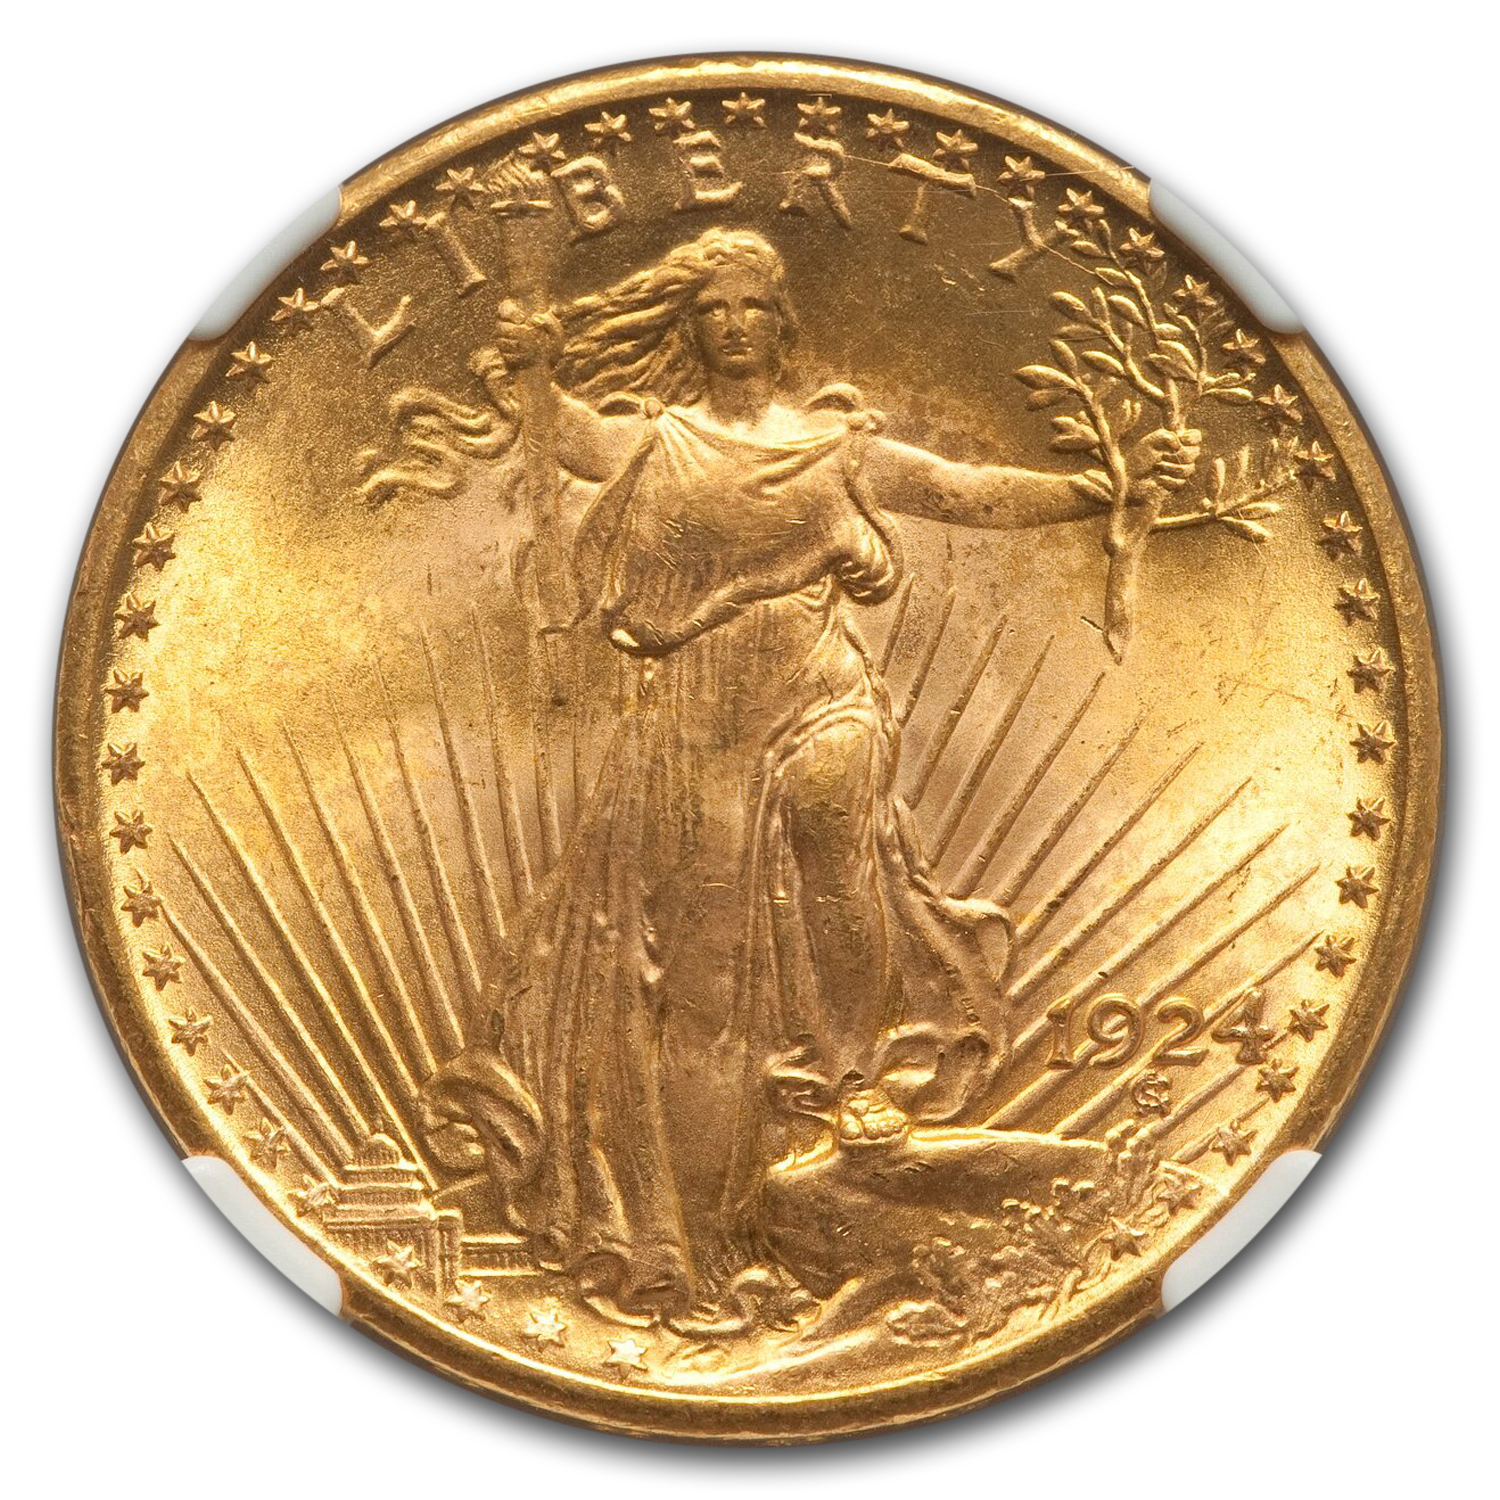 1924 $20 St. Gaudens Gold Double Eagle - MS-67 NGC